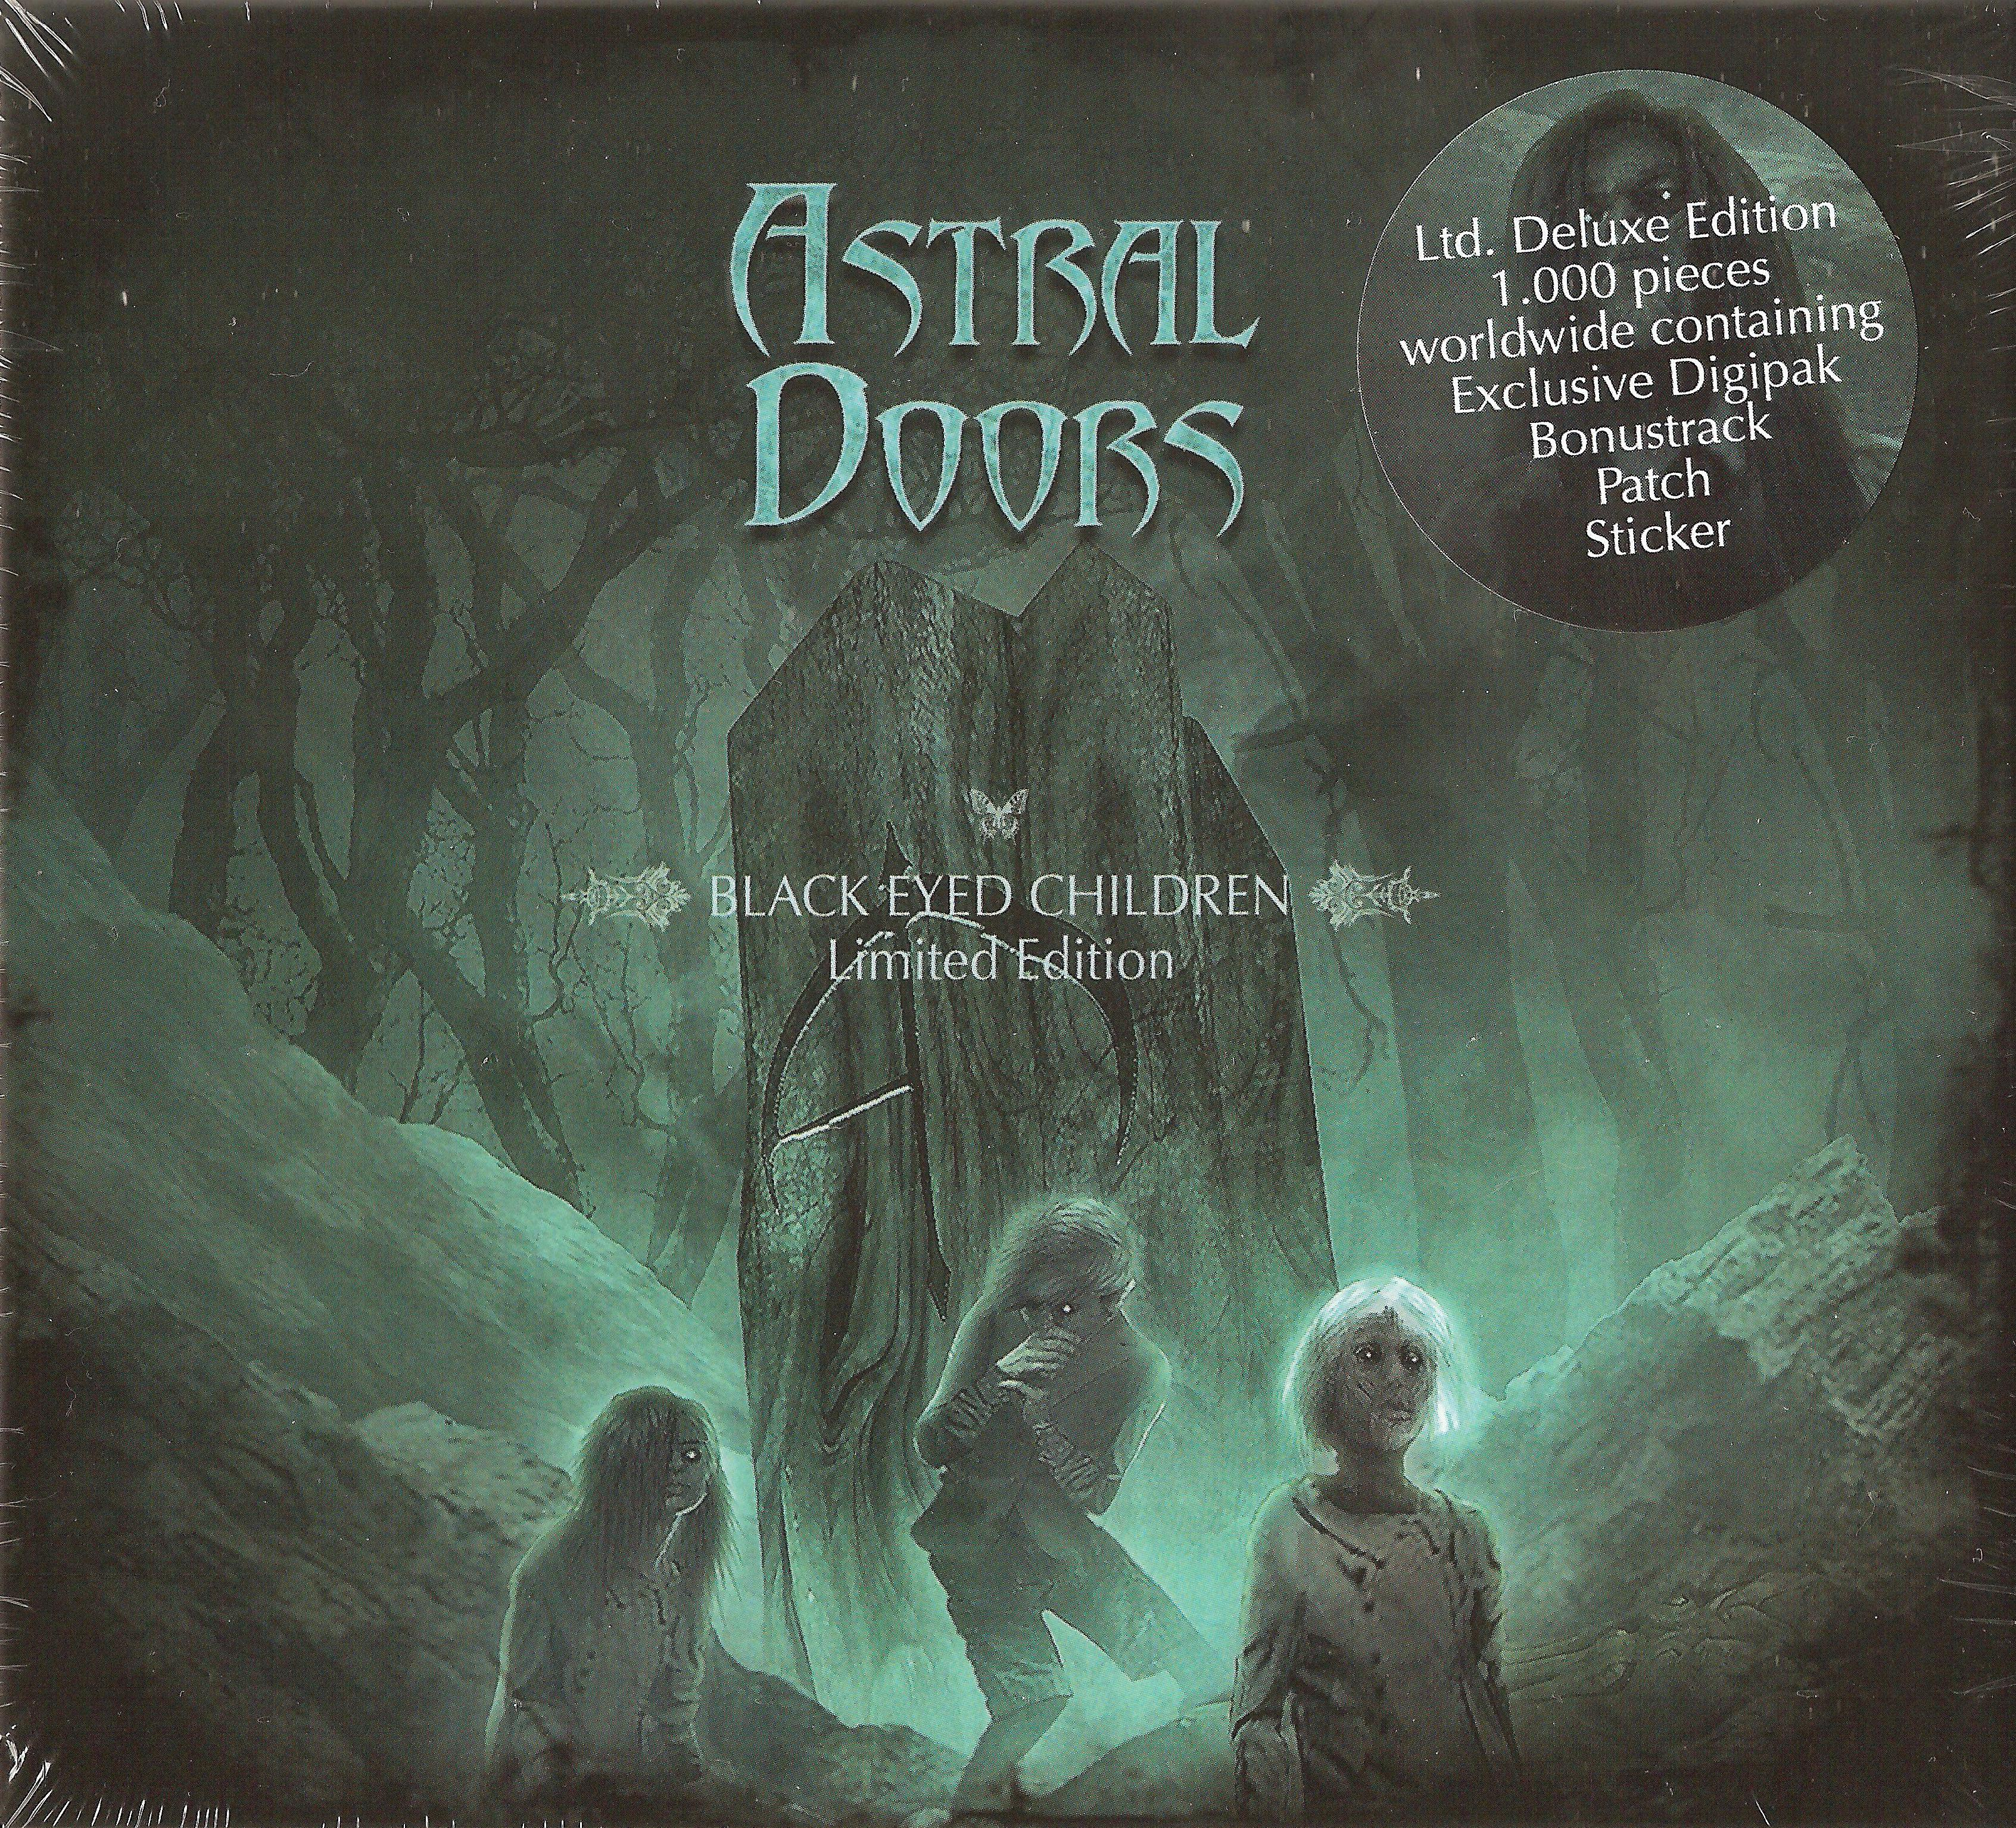 Band Name Astral Doors Album Title Black Eyed Children Total Playing Time 005545 Min. Country Sweden Year 2017. Record Label Metalville & Astral Doors - Black Eyed Children [Limited Edition] (2017) [FLAC ...